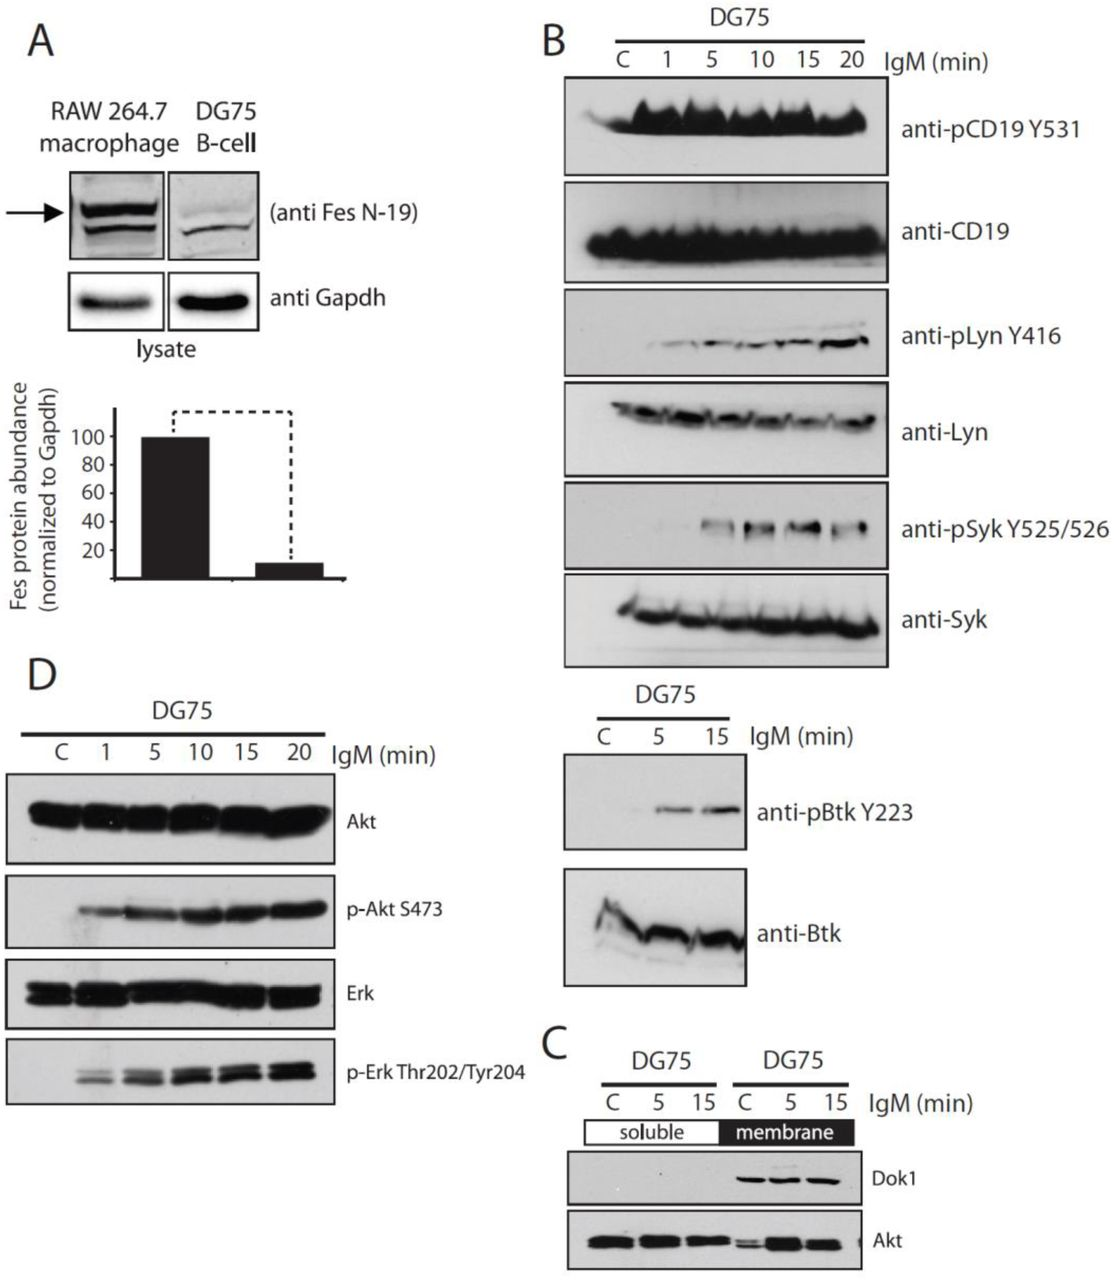 (A) Western blot analysis of endogenous Fes kinase from RAW684.3 (macrophage) and DG75 (B-lymphocyte) cell lines (Arrow indicates Fes protein band). Quantification of cellular protein levels is normalized to Gapdh and shown in the lower panel. (B) Western blot validation of activating phosphorylation sites on known BCR responders such as Syk, Btk, Lyn and CD19 showed a strong engagement of diverse signaling cascades following BCR stimulation of DG75 cells. (C) Downstream signaling pathways such as the recruitment of Akt to the membrane (Dok1 localization to the membrane is shown as a control for membrane preparations) and (D) activation of Akt and Erk pathways, as measured by phosphorylation of S473 and T202/Y204 respectively, confirmed DG75's suitability as a model system for BCR activation and signal processing.